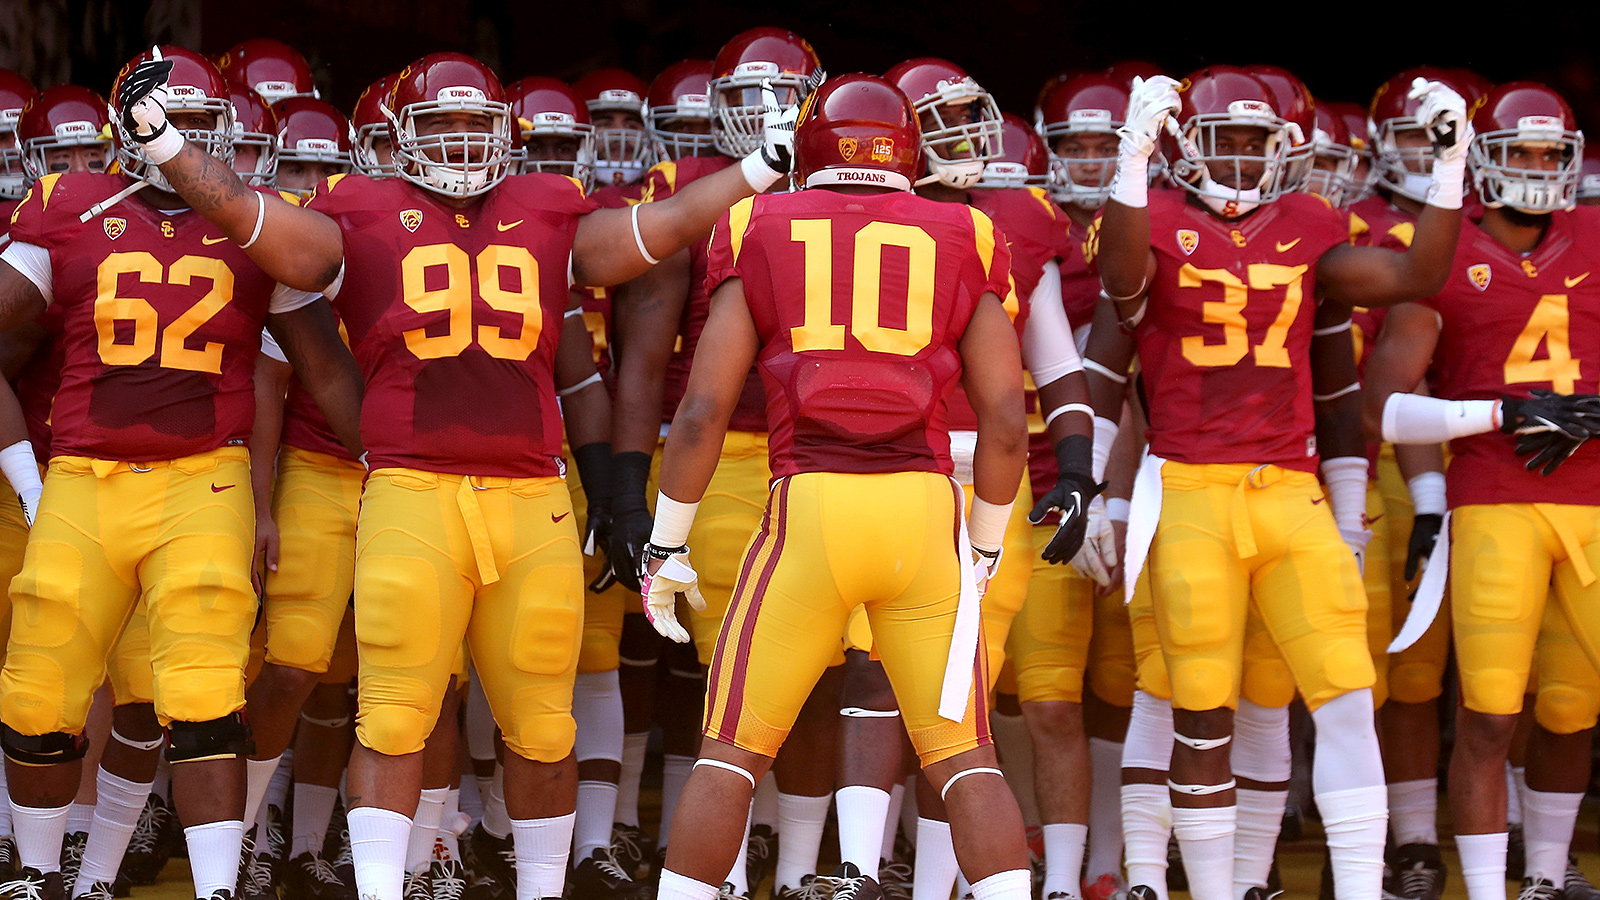 USC Football live stream online free How to watch USC Trojans football game live stream amp Find USC college football news schedule stats TV coverage online